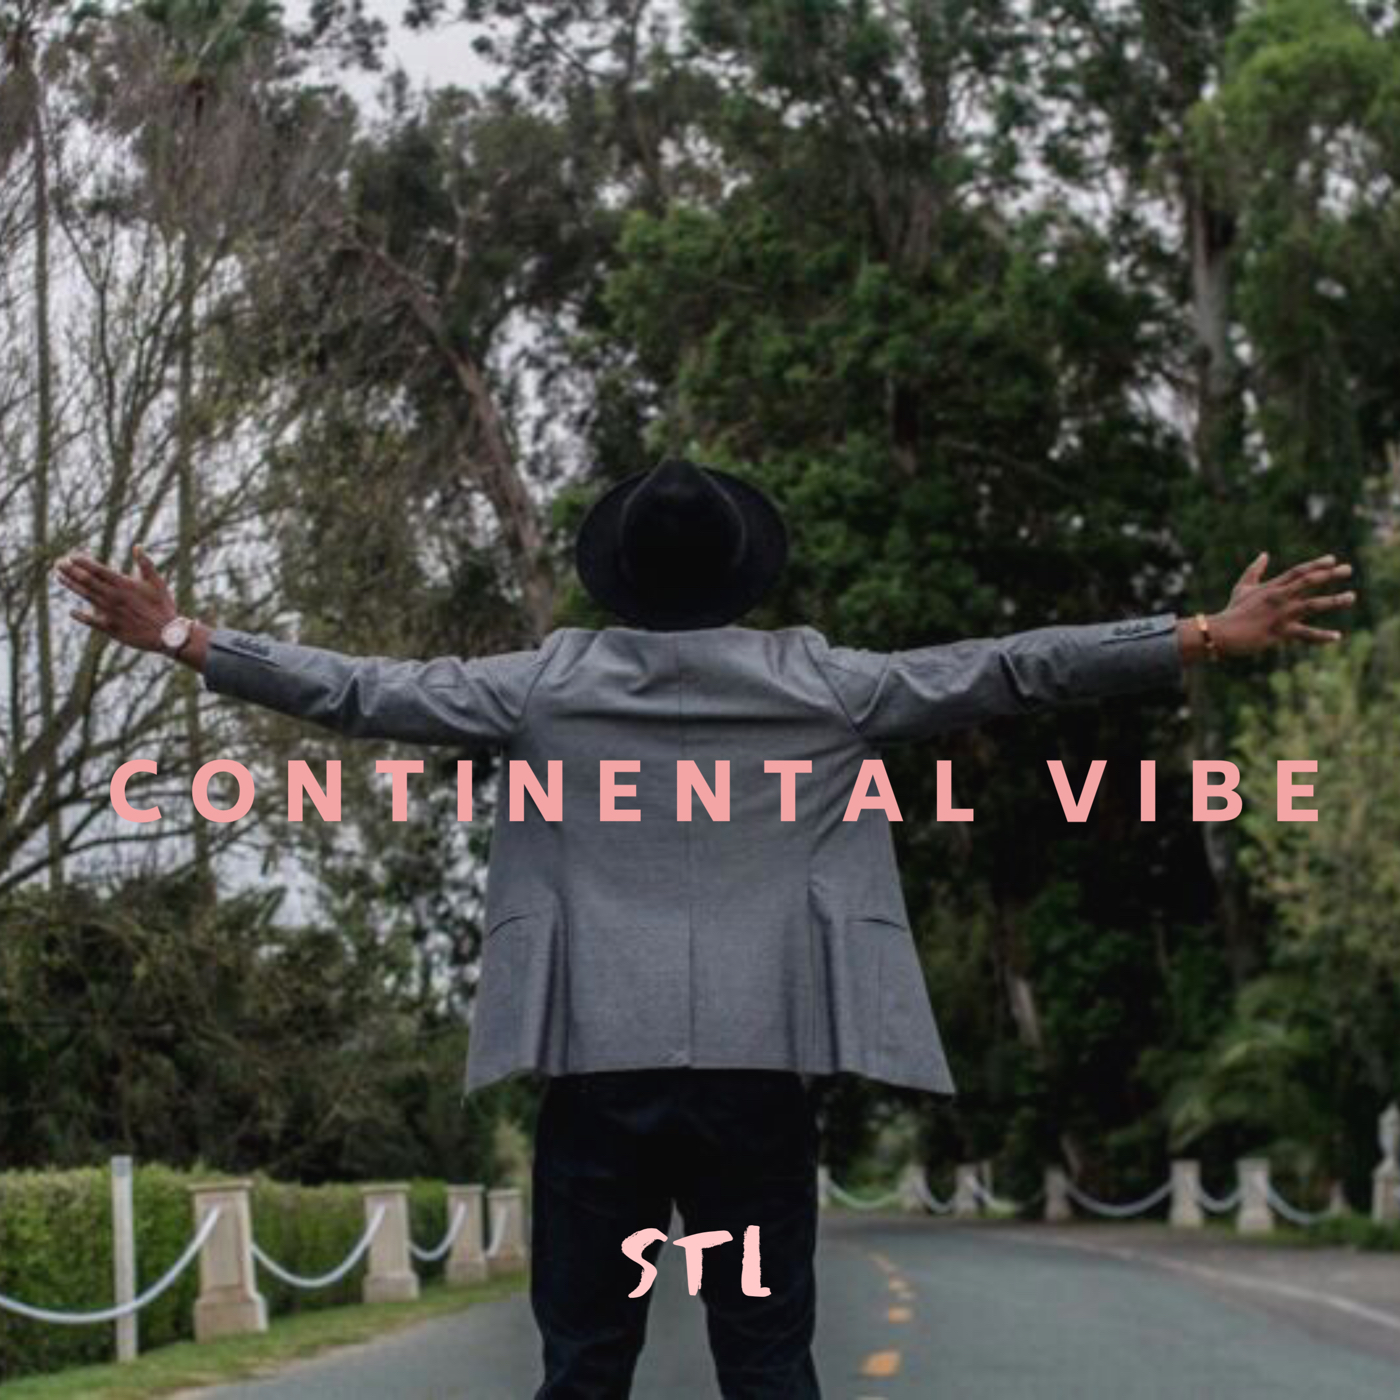 STL – FREE (CONTINENTAL VIBE EP)